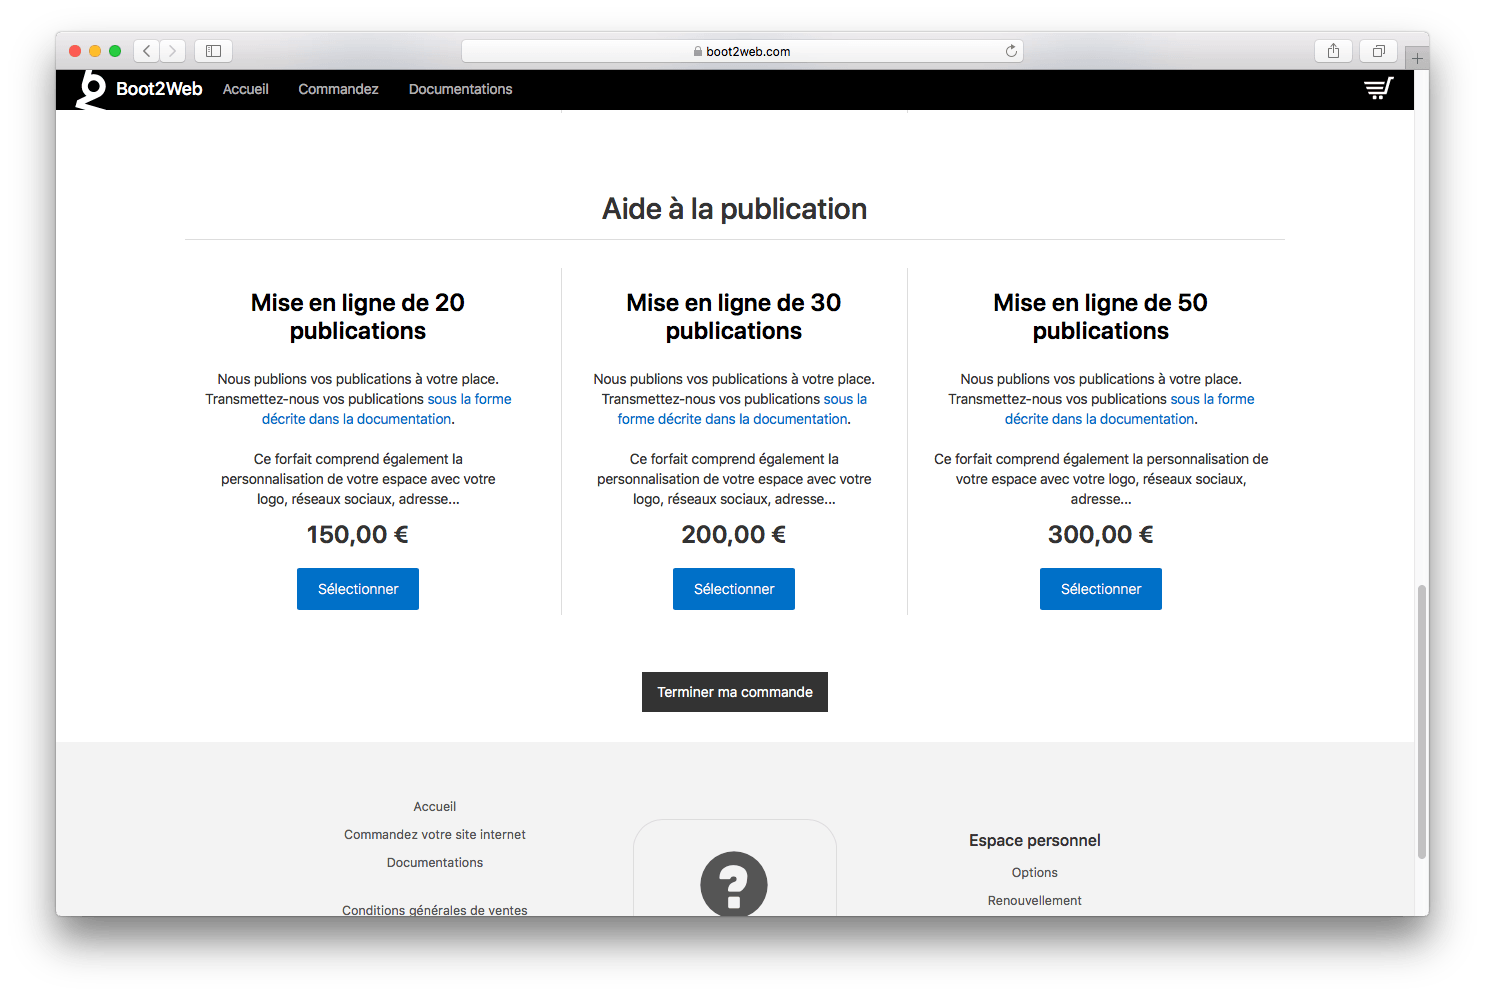 boot2web - assistance à la publication de vos contenus